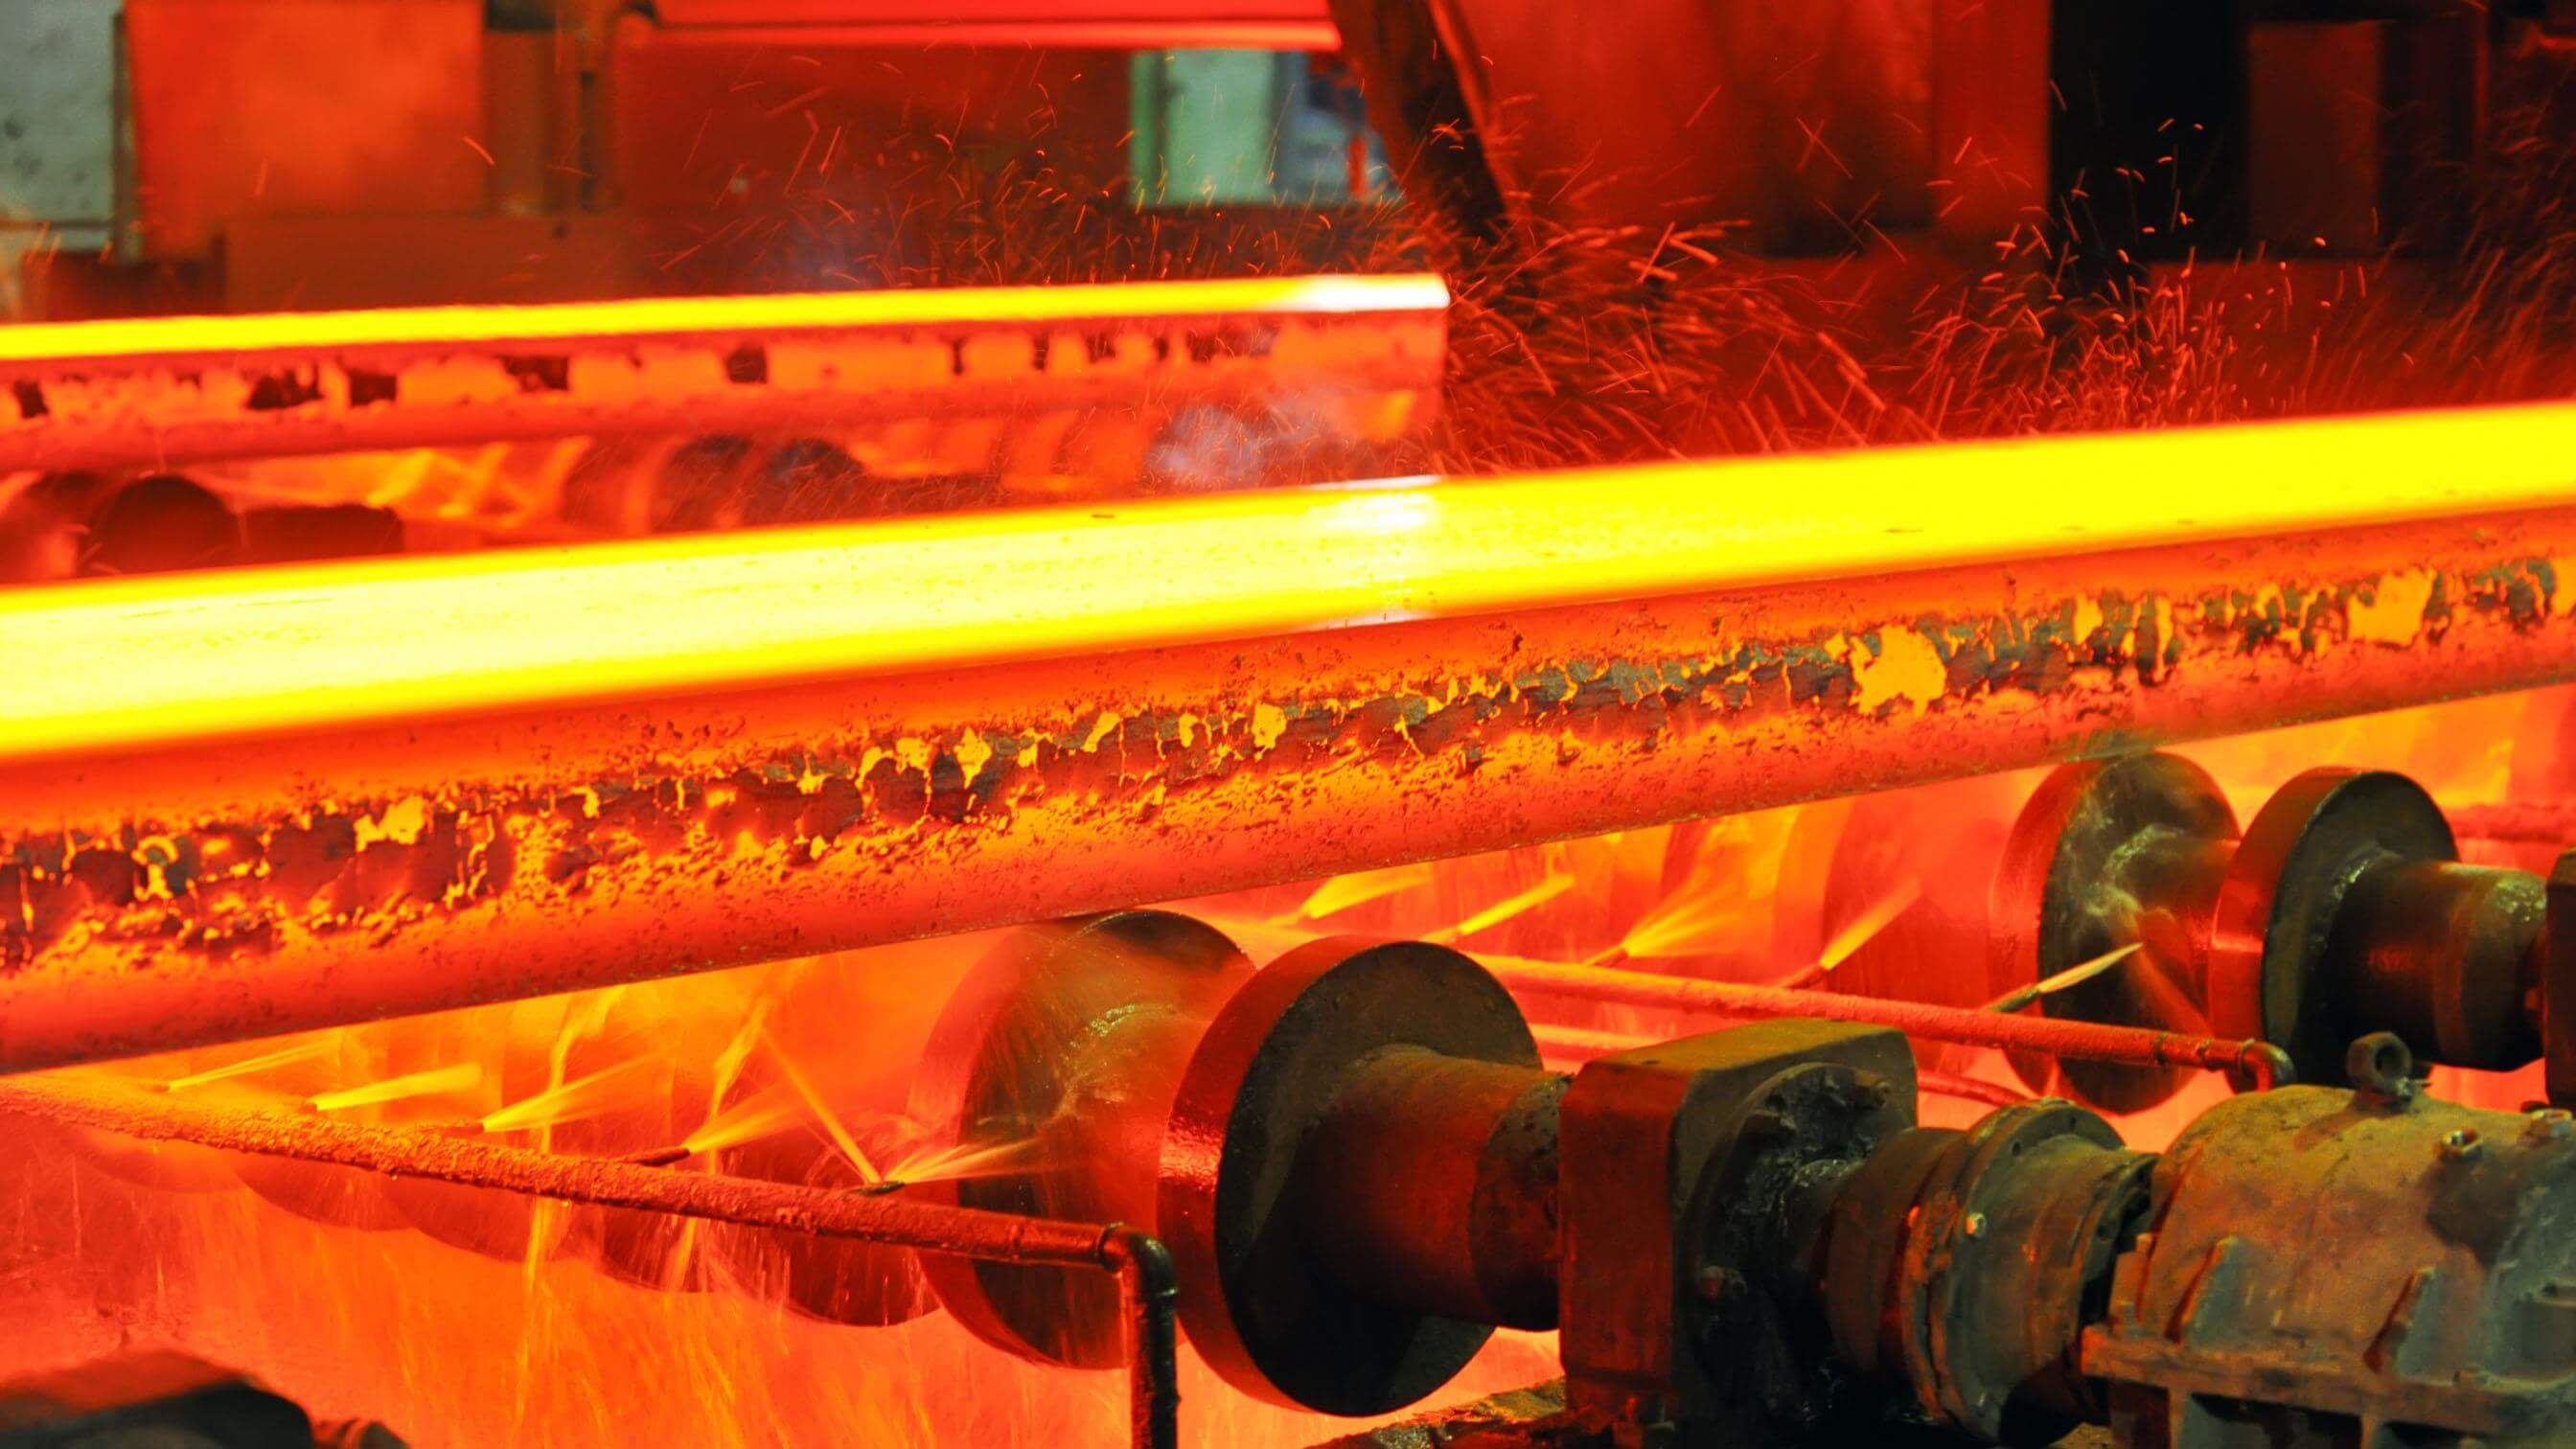 red hot melting steel